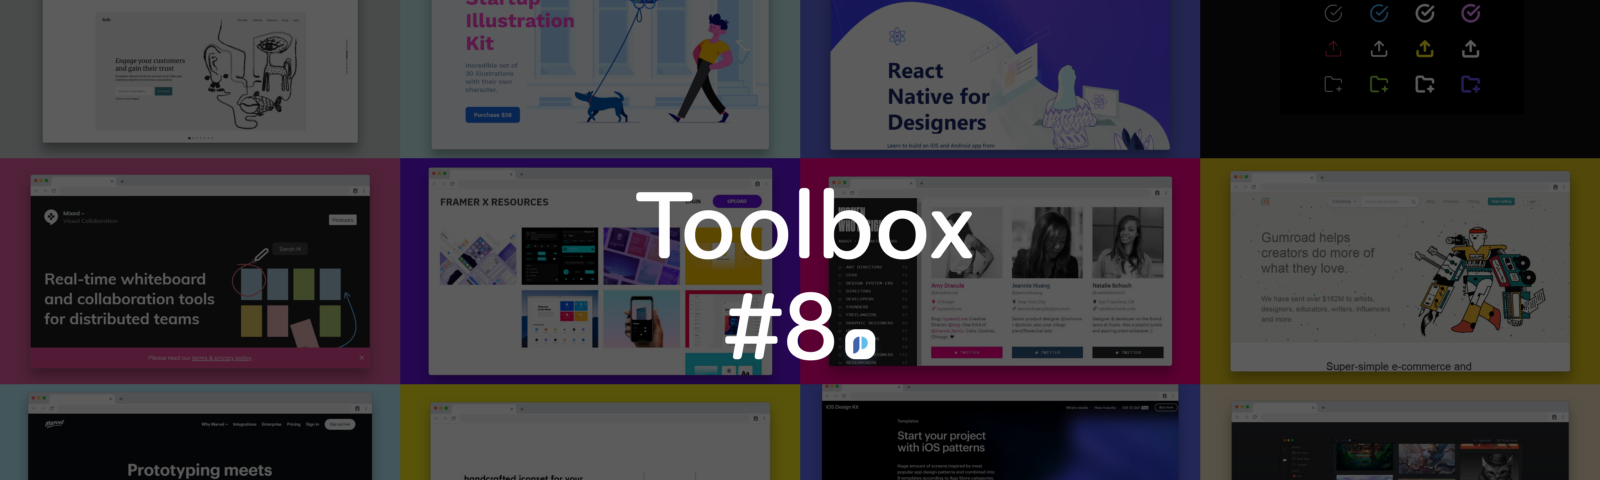 All stories published by Prototypr on March 05, 2019